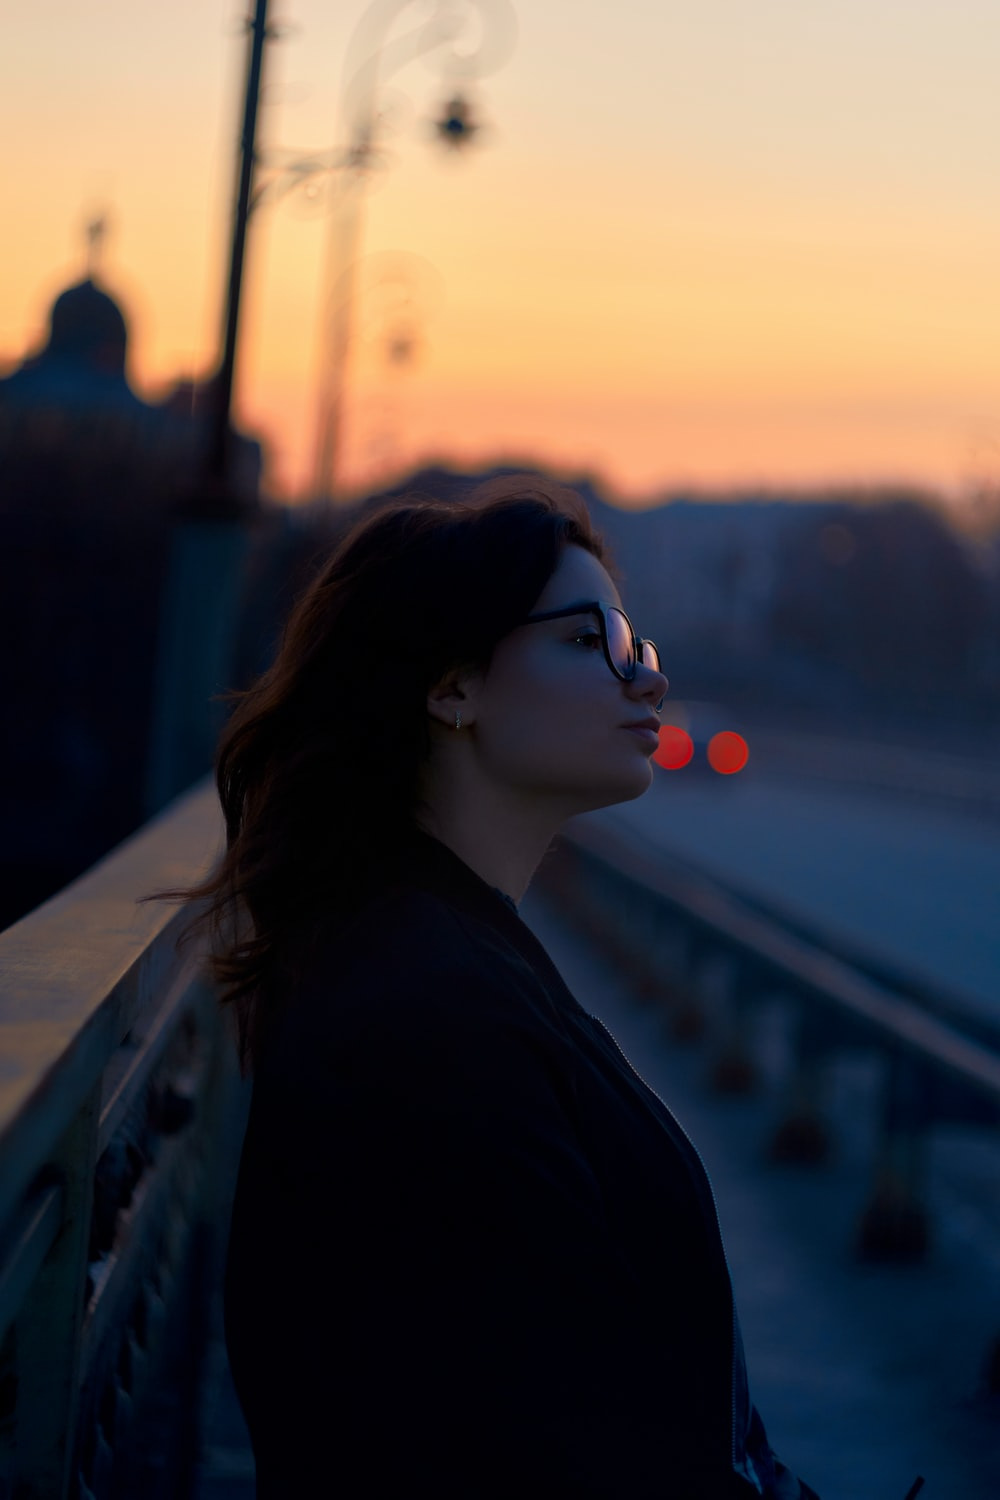 woman in black jacket wearing sunglasses during sunset